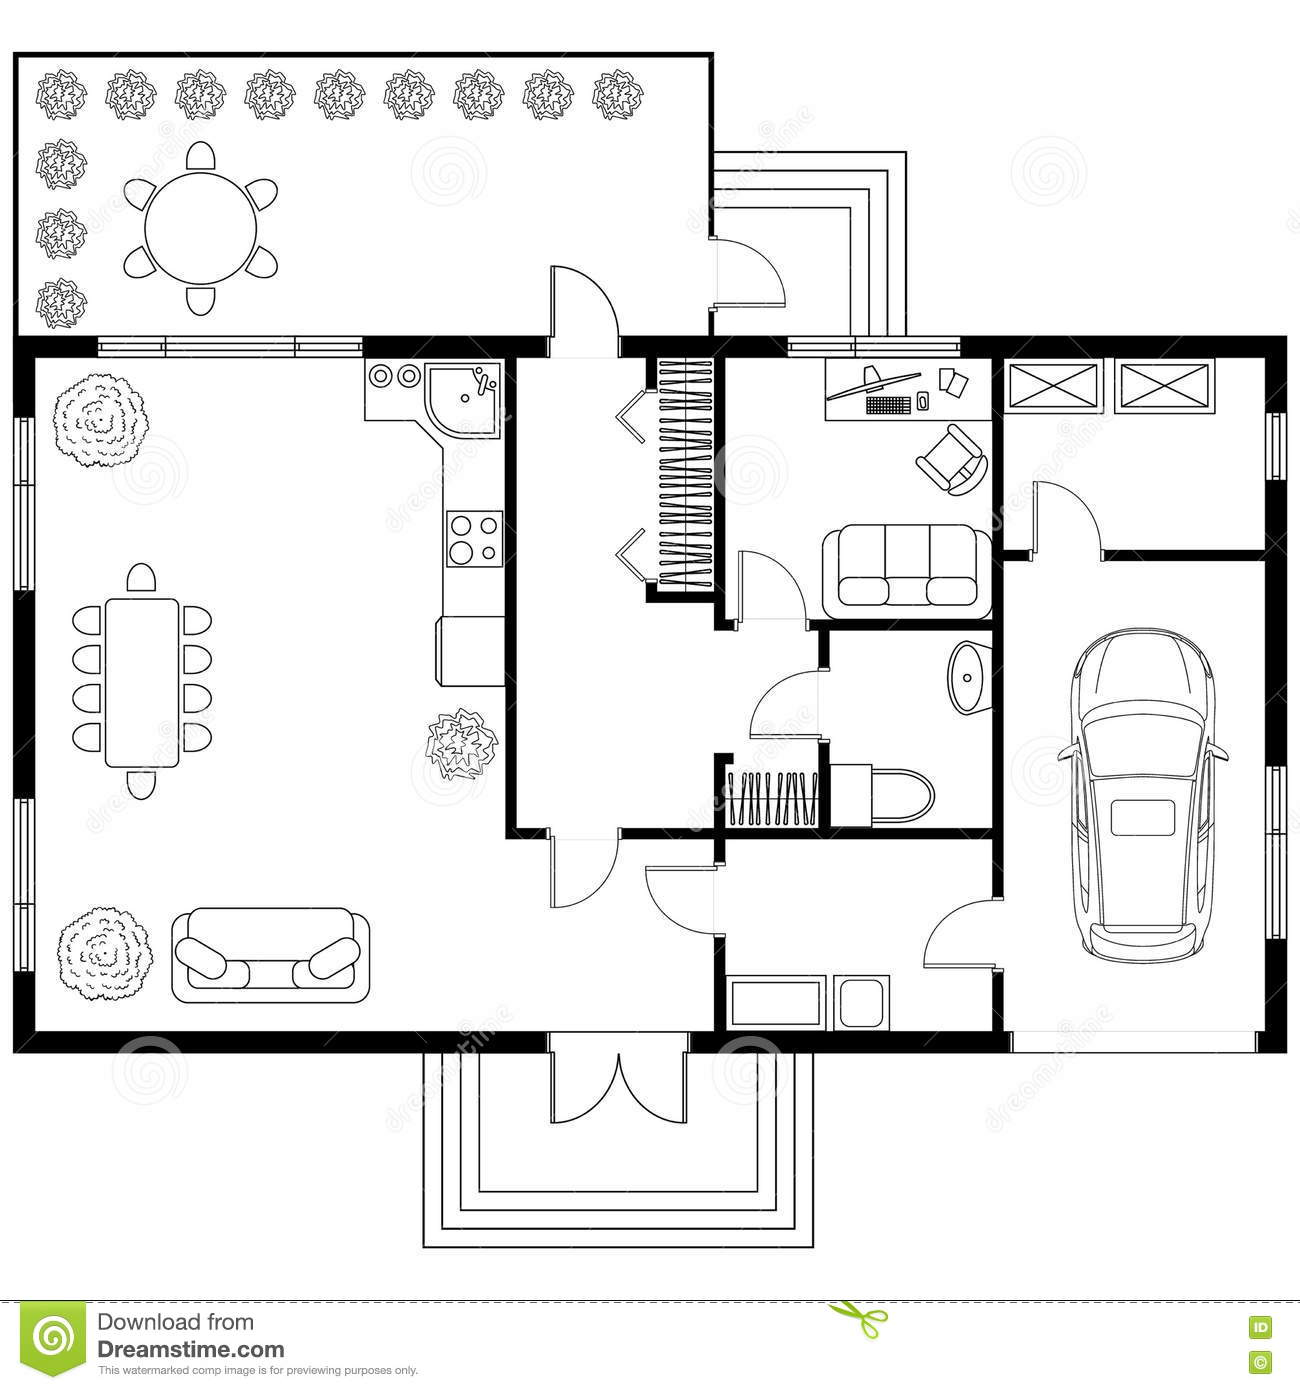 Plan architectural d 39 une maison avec le garage for Architecte plan maison